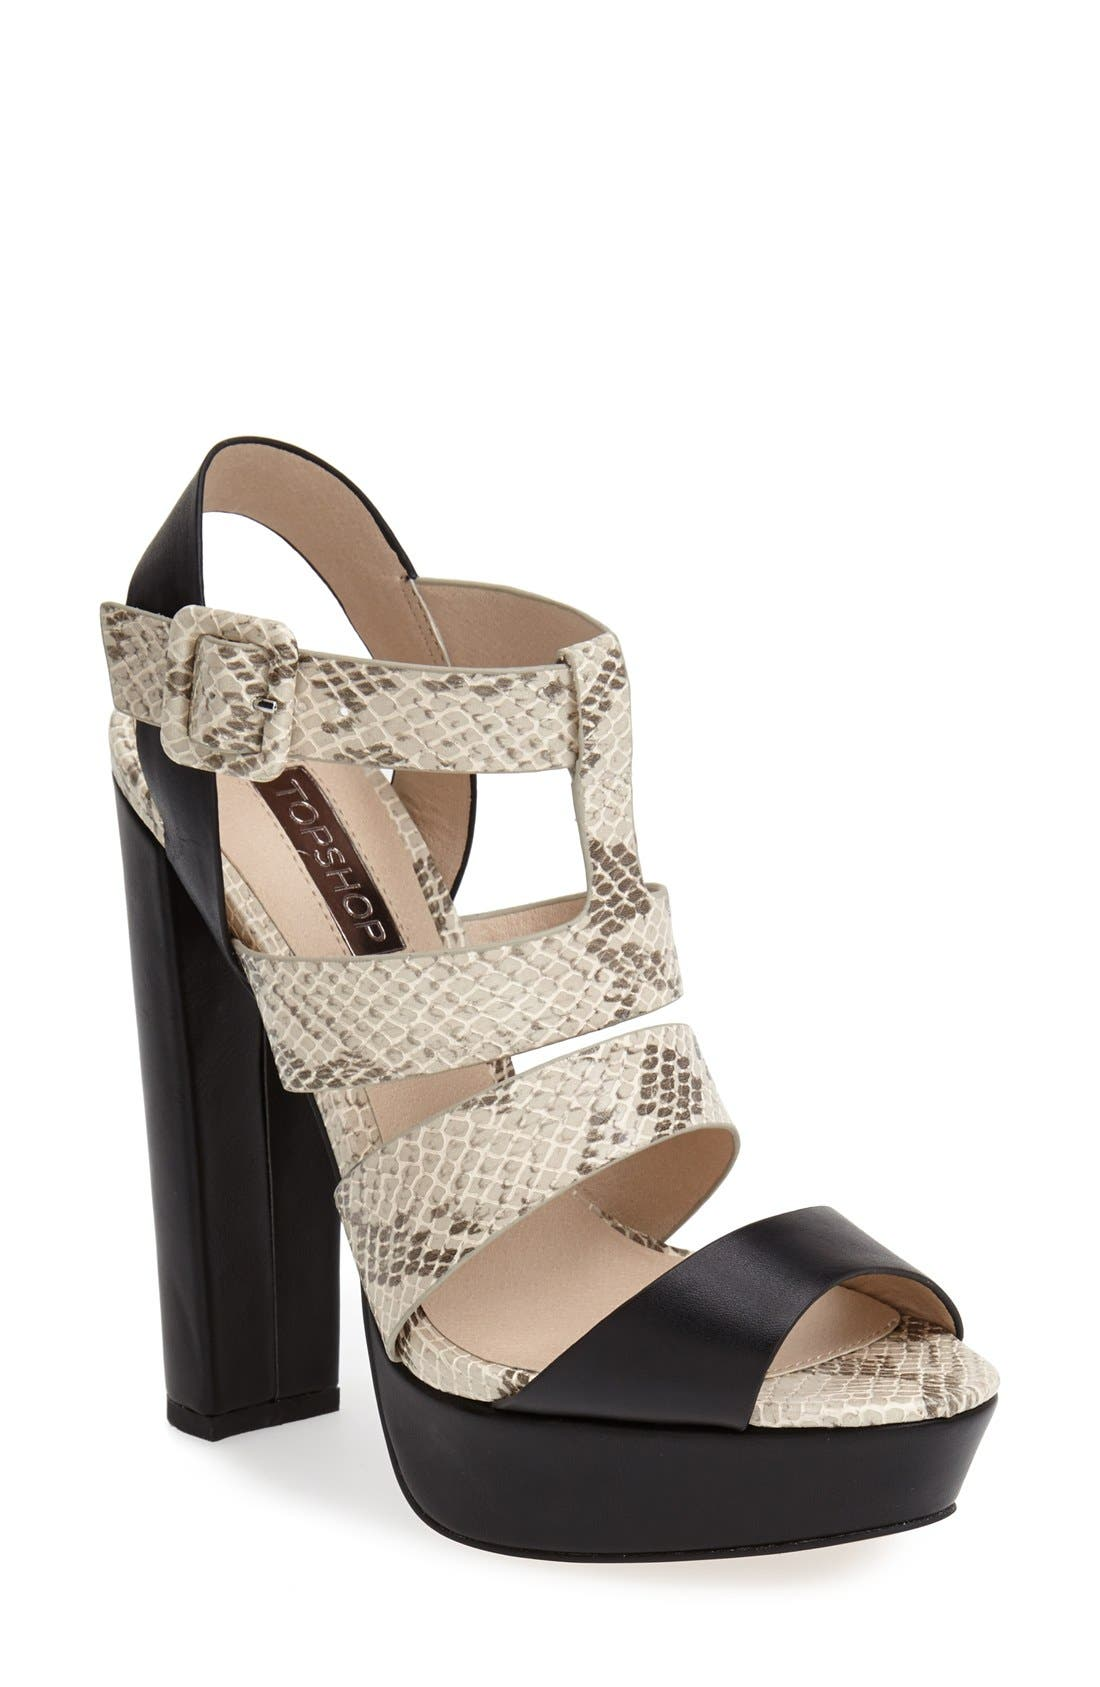 Alternate Image 1 Selected - Topshop 'Lucy' Gladiator Sandal (Women)